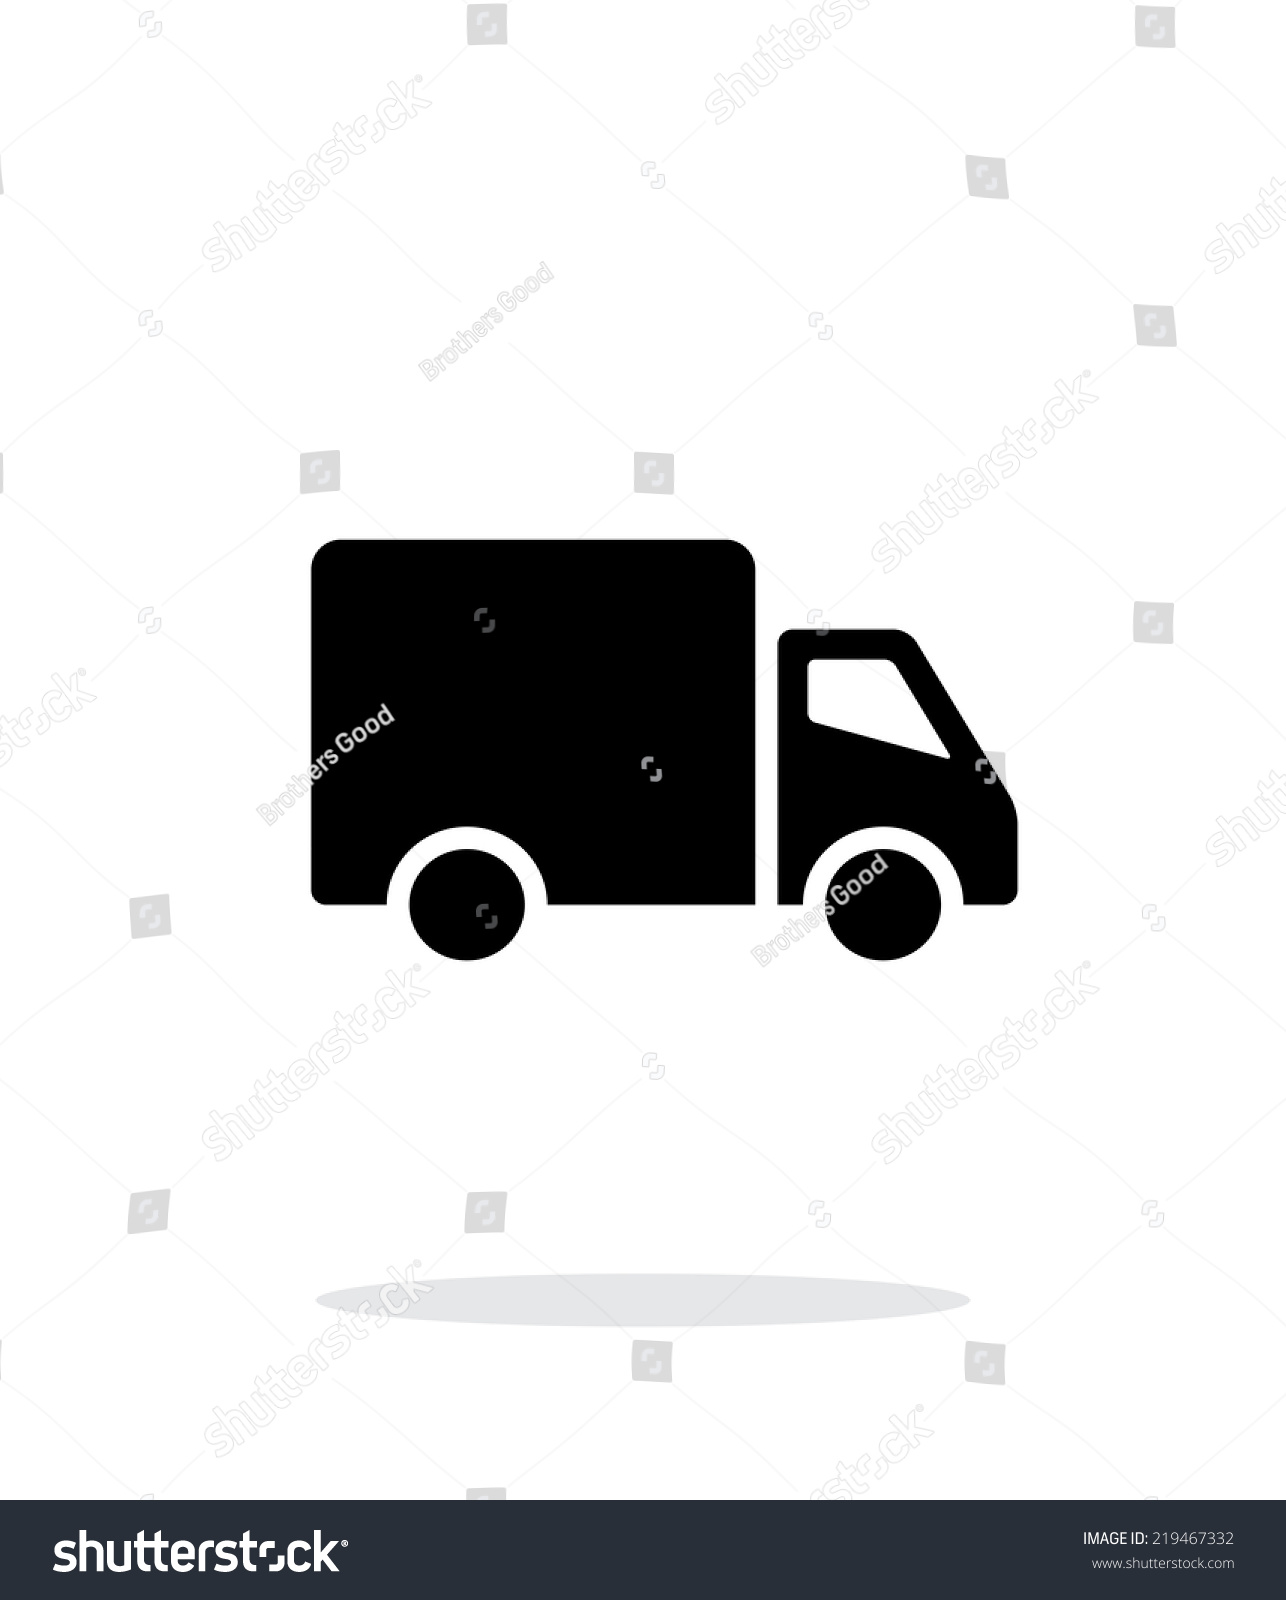 delivery truck icon vector - photo #28